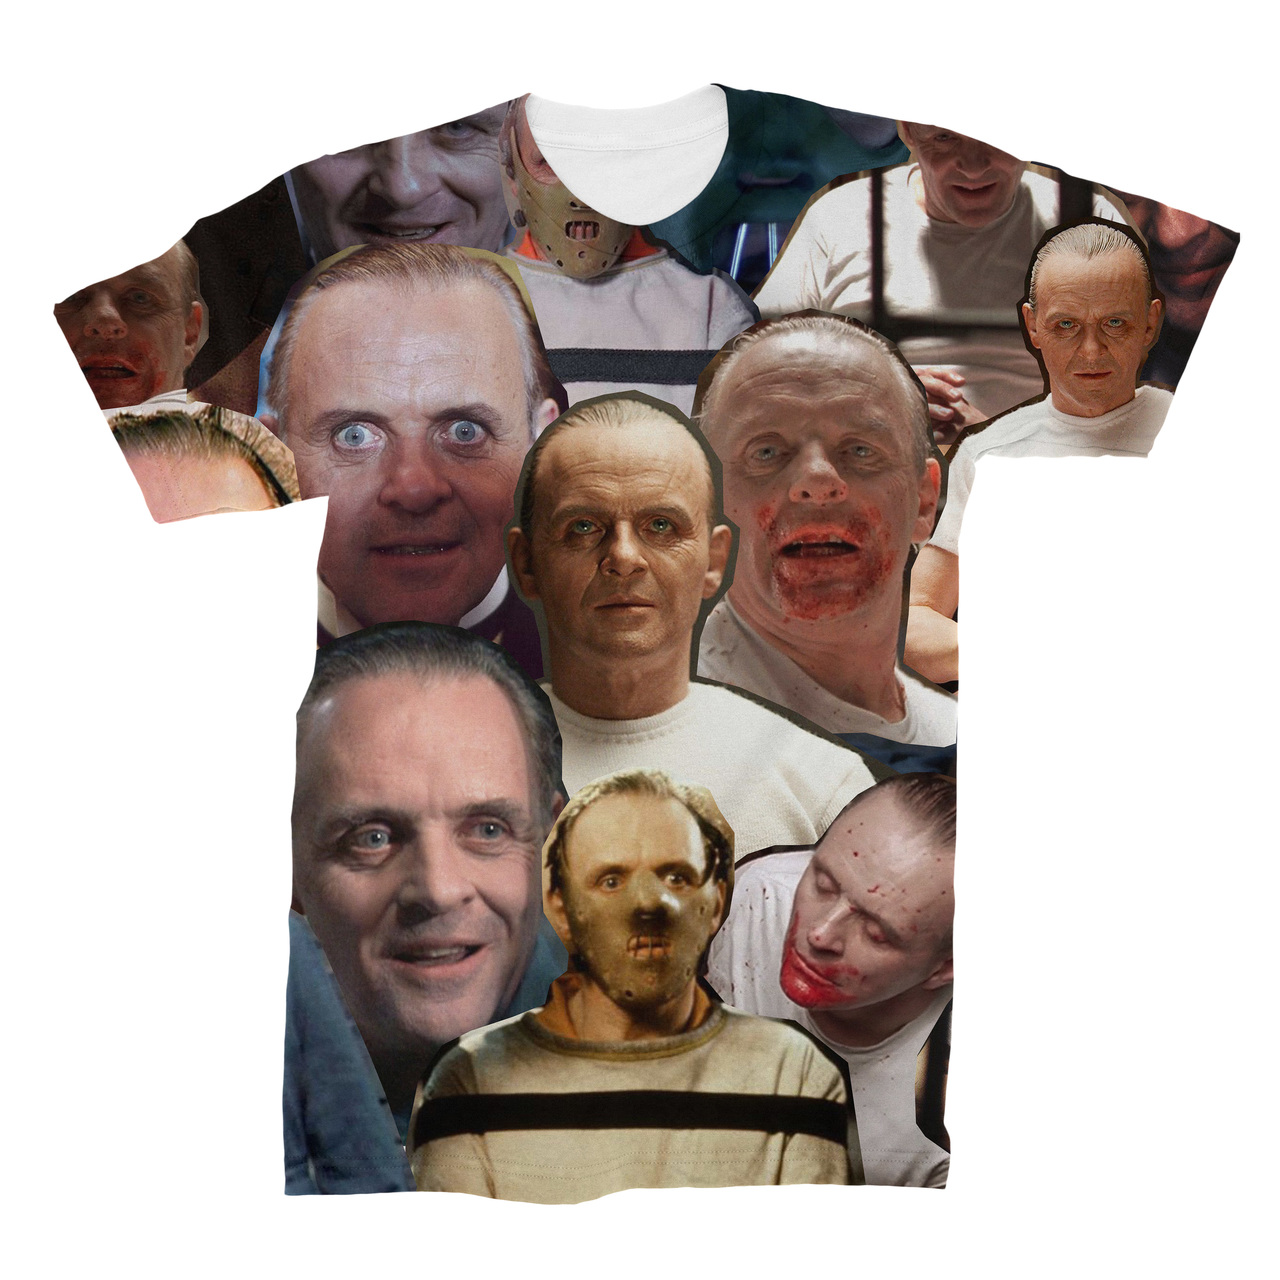 012b934e34ecf7 Hannibal Lecter Photo Collage T-Shirt - Subliworks